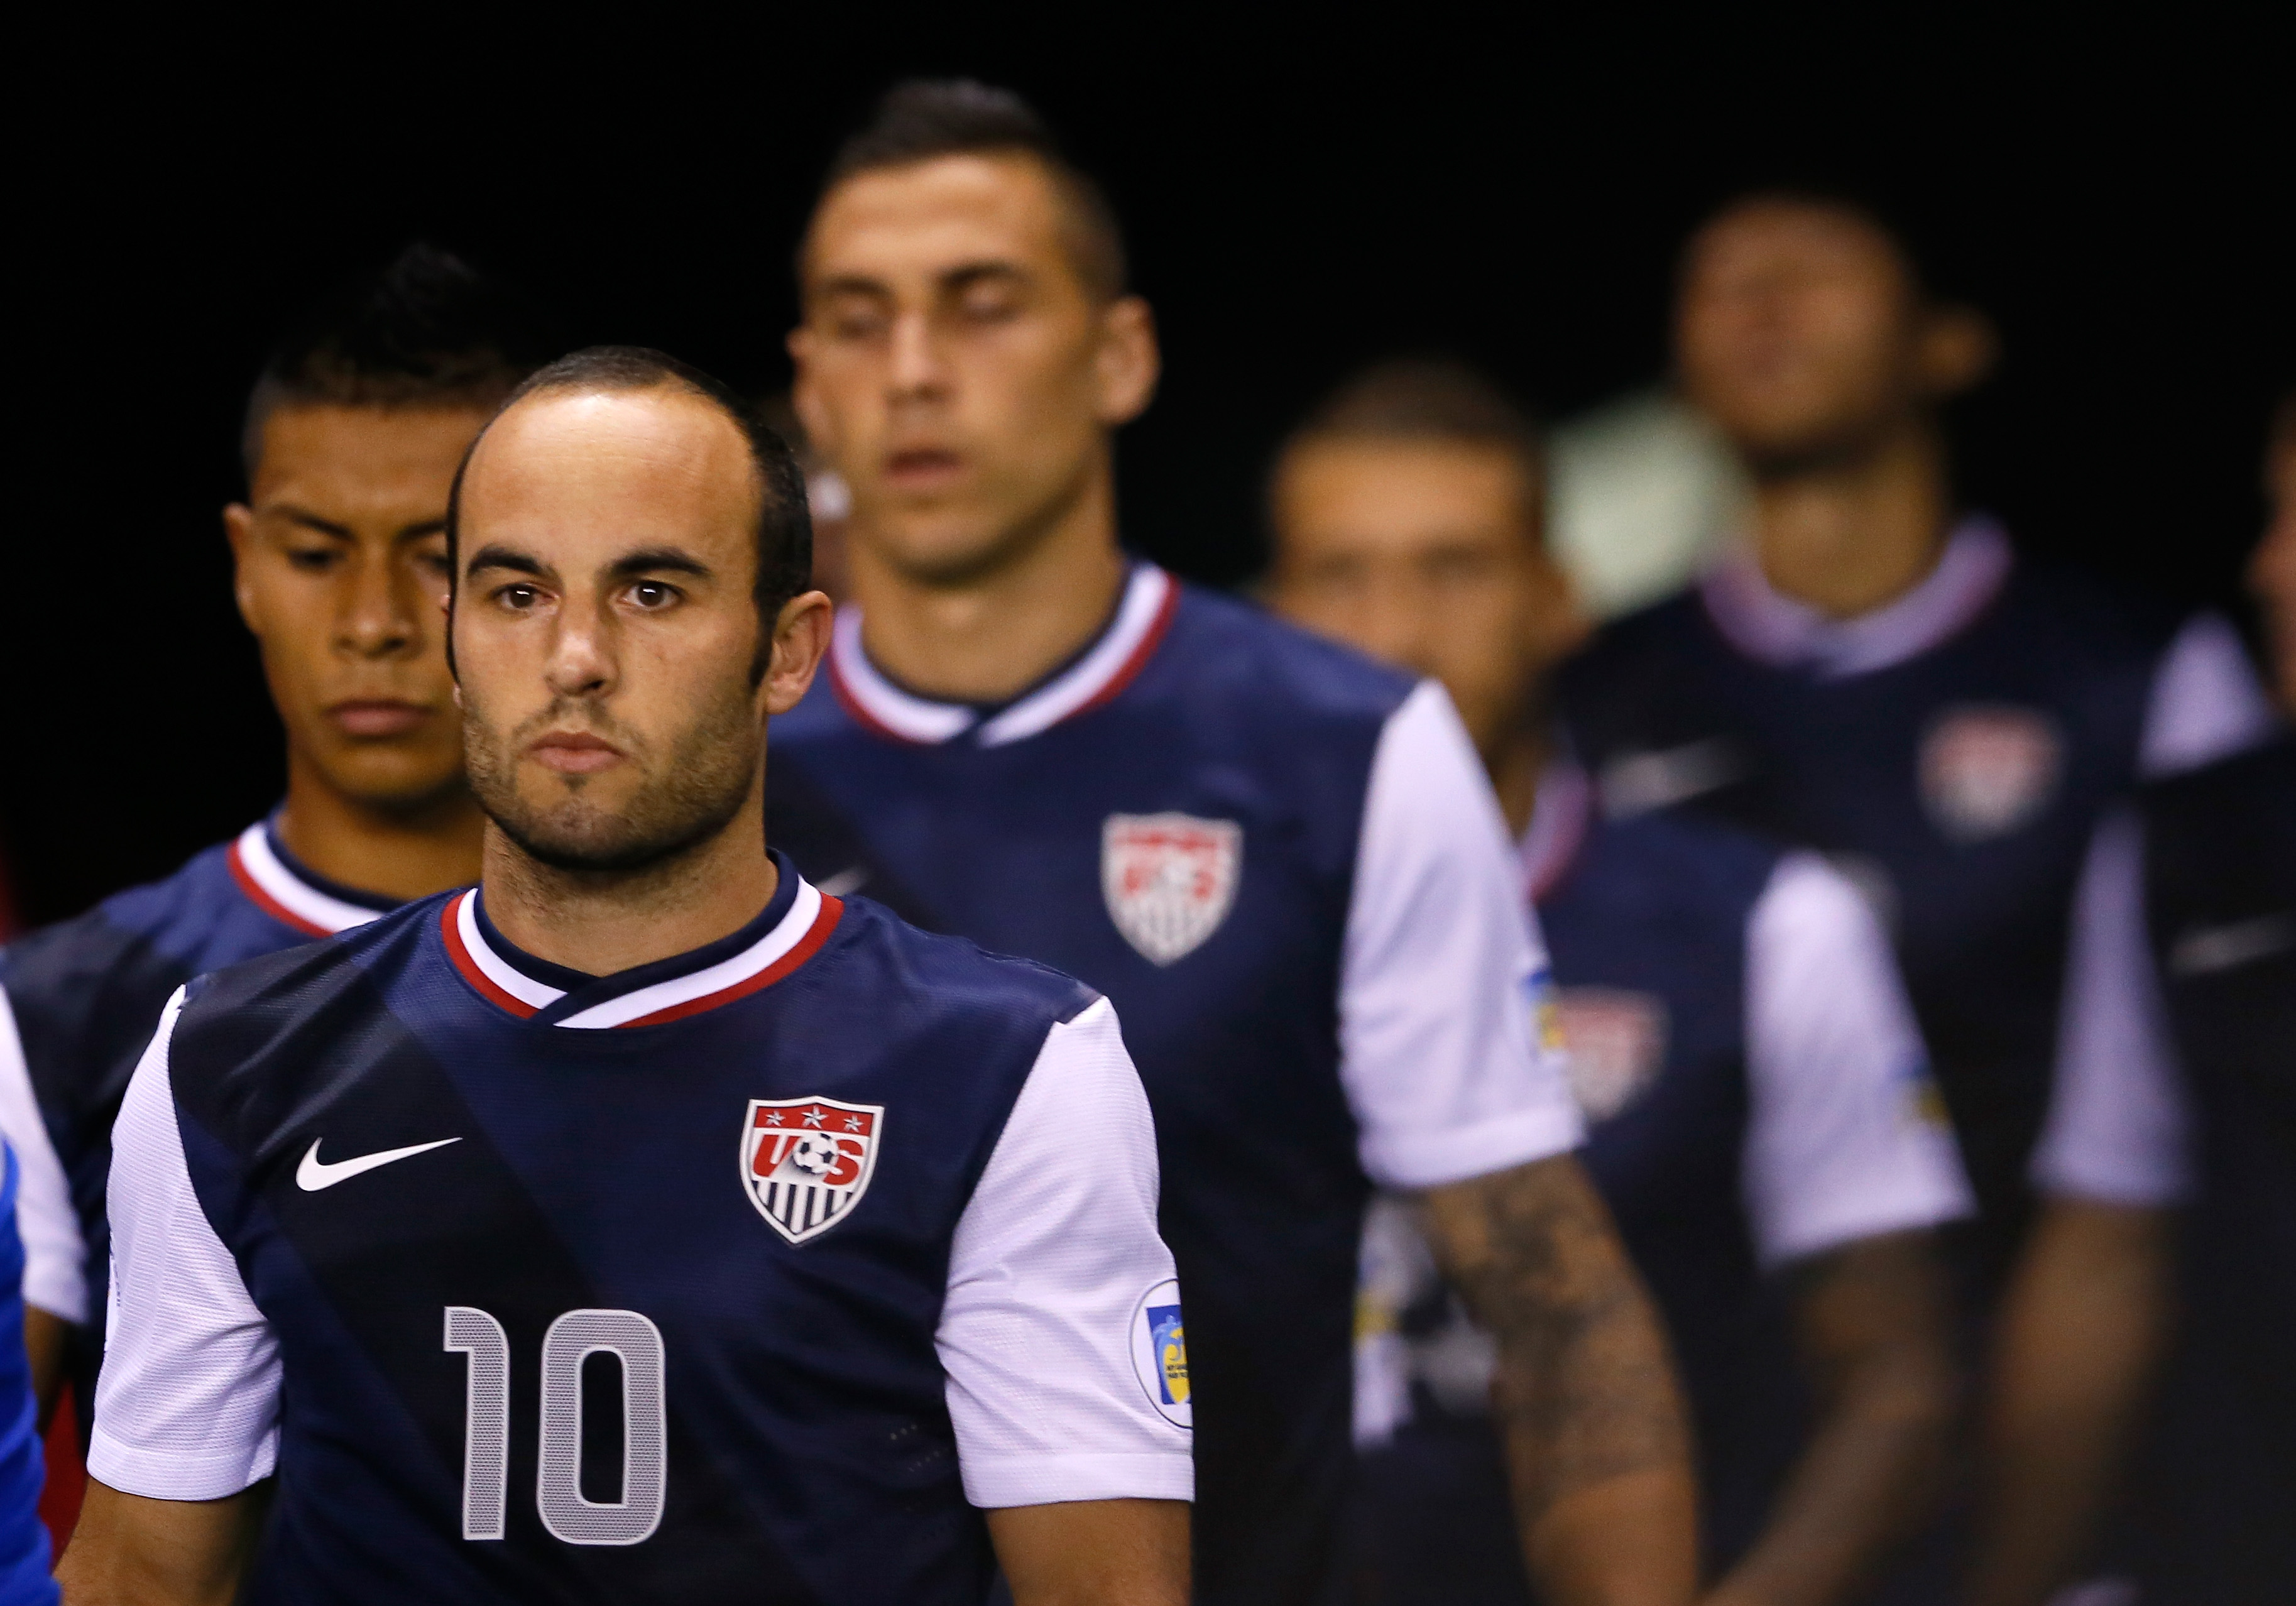 Landon Donovon prepares to play against Costa Rica during the 2014 World Cup Qualifier at Estadio Nacional on Sept. 6, 2013 in San Jose, Costa Rica.